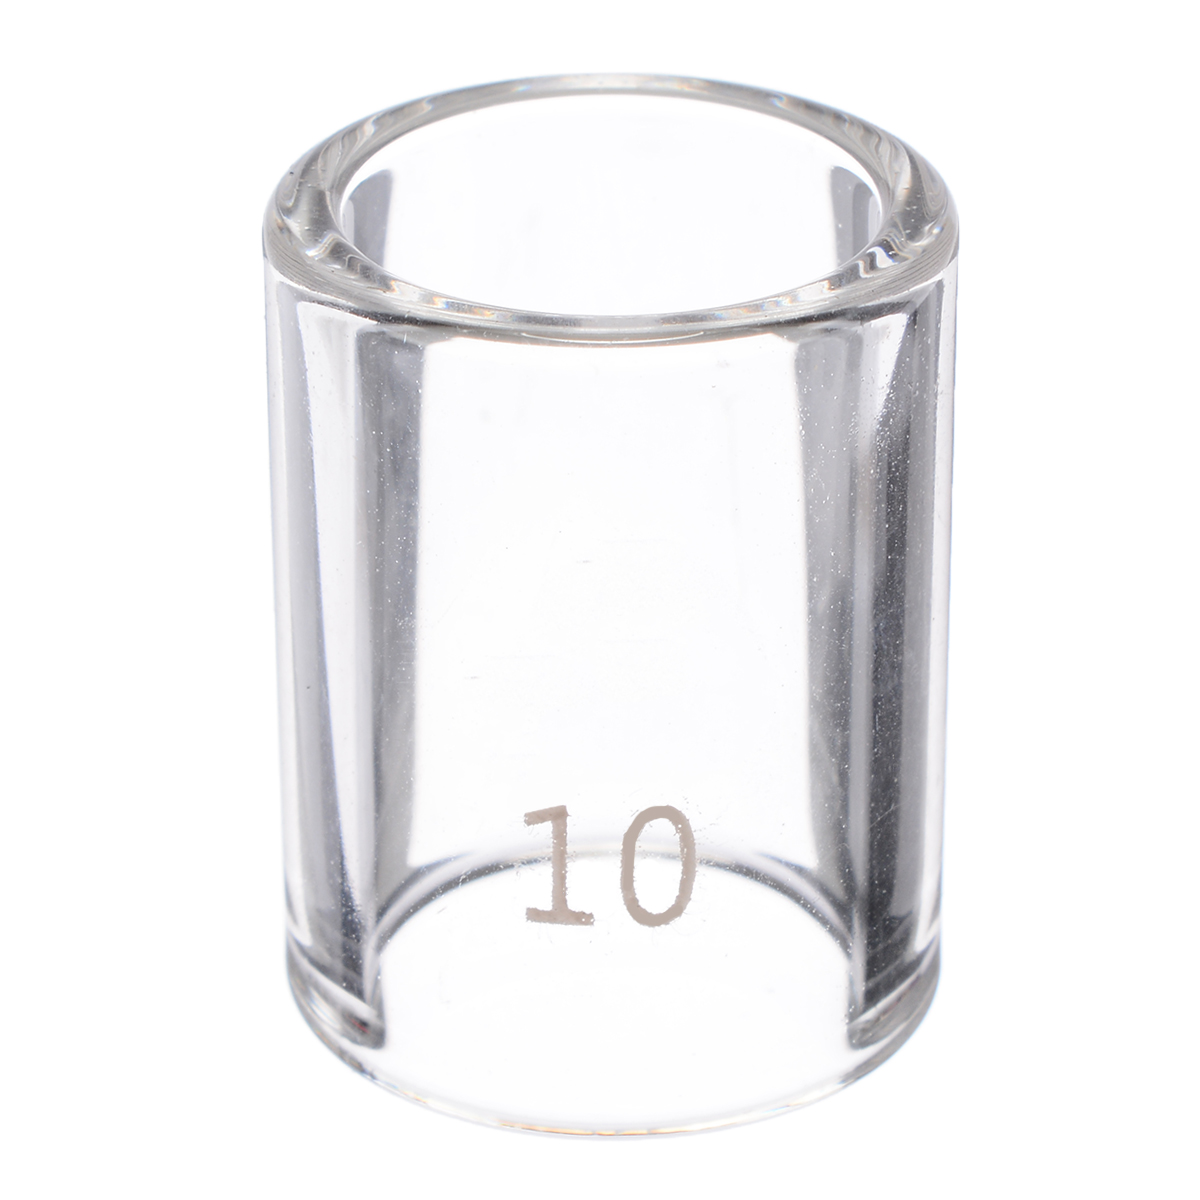 40pcs/Lot TIG Welding Kit Torch Collet Gas Lens Pyrex Glass Cup Practical Welding Accessories for WP-9/20/25